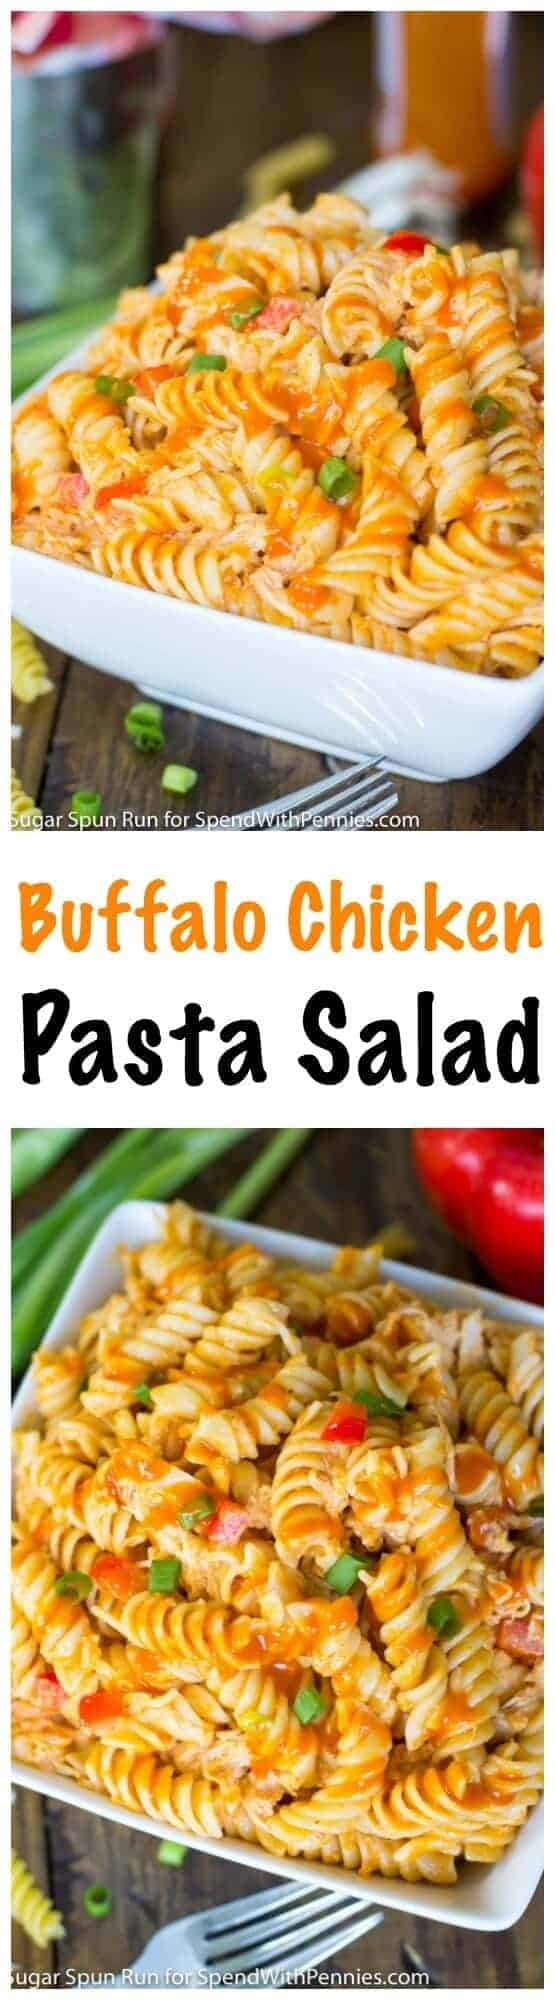 Buffalo Chicken Pasta Salad with text